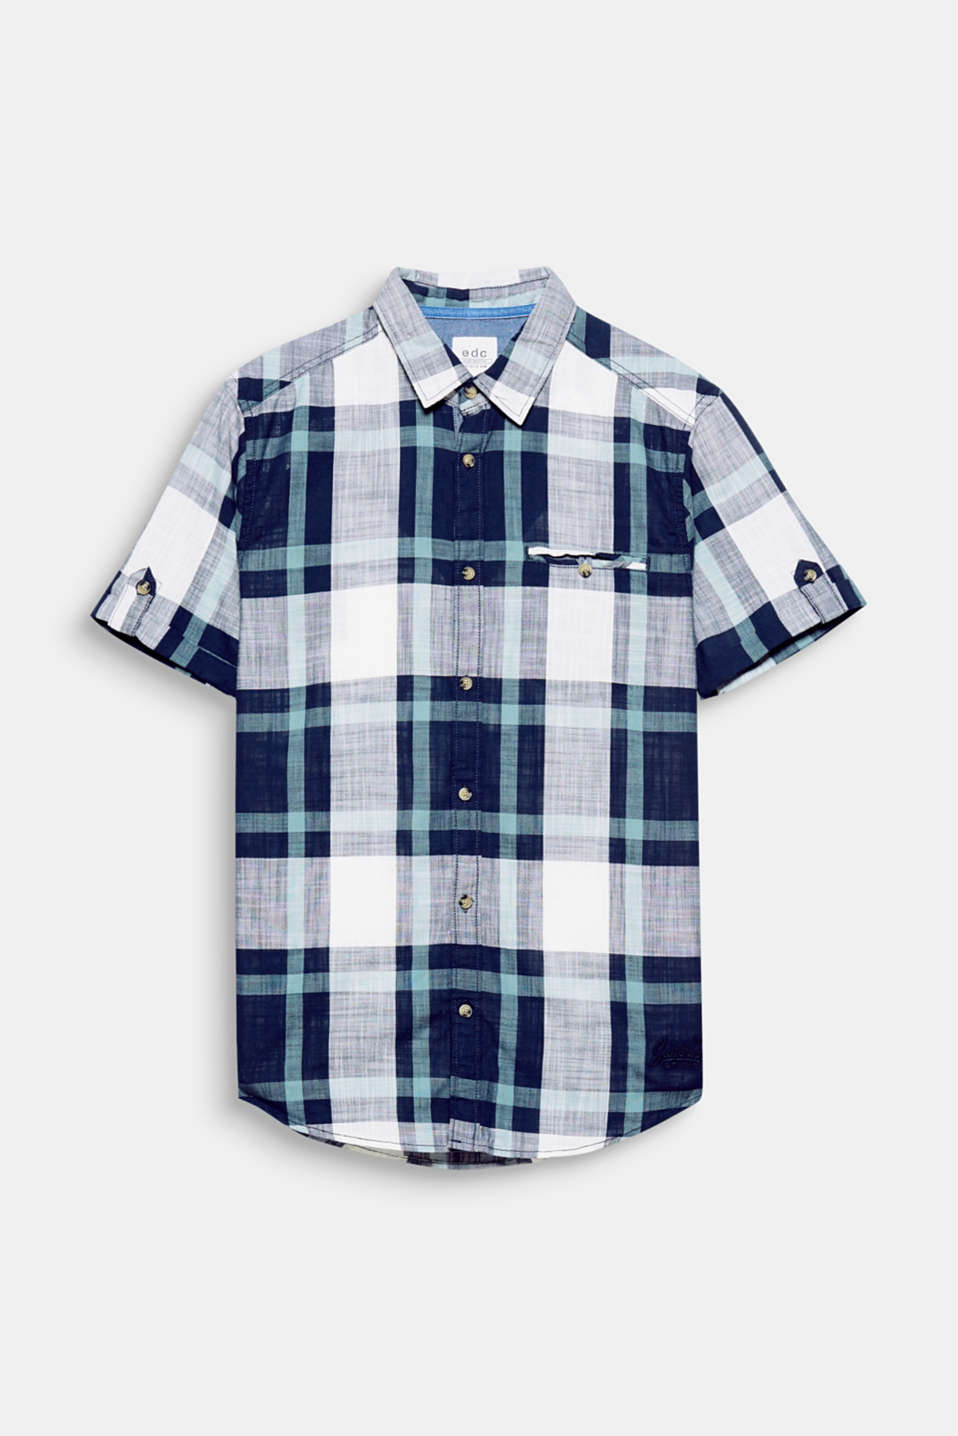 The stunning, interwoven check pattern makes this short sleeve shirt in textured cotton fabric a head-turner.